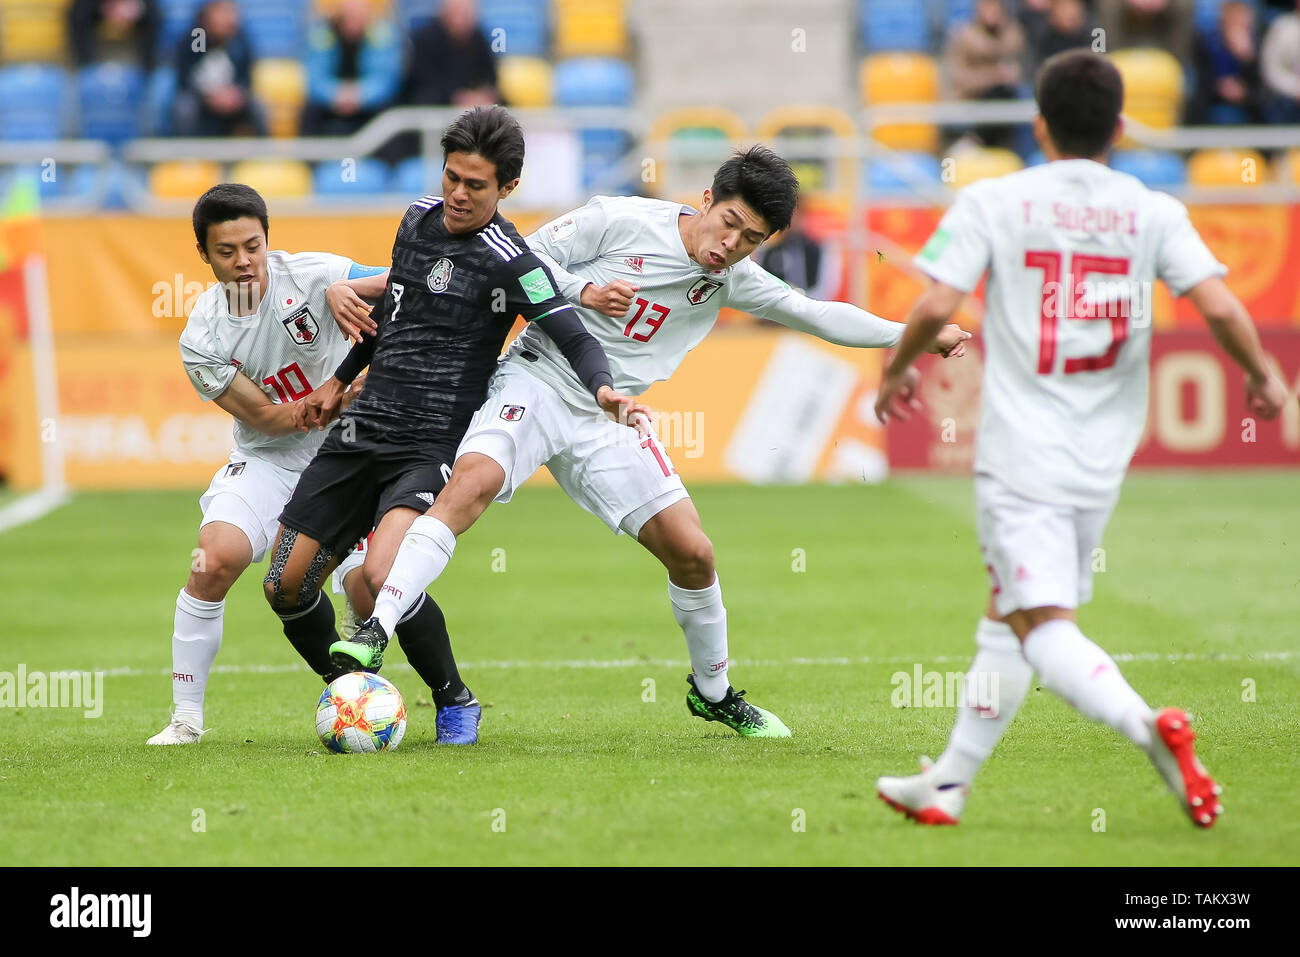 Gdynia Stadium, Gdynia, Poland - 26th May, 2019: Mitsuki Saito (L), Taisei Miyashiro (R) from Japan and Jose Macias (C) from Mexico seen in action during FIFA U-20 World Cup match between Mexico and Japan (GROUP B) in Gdynia. (Final score; Mexico 0:3 Japan) - Stock Image